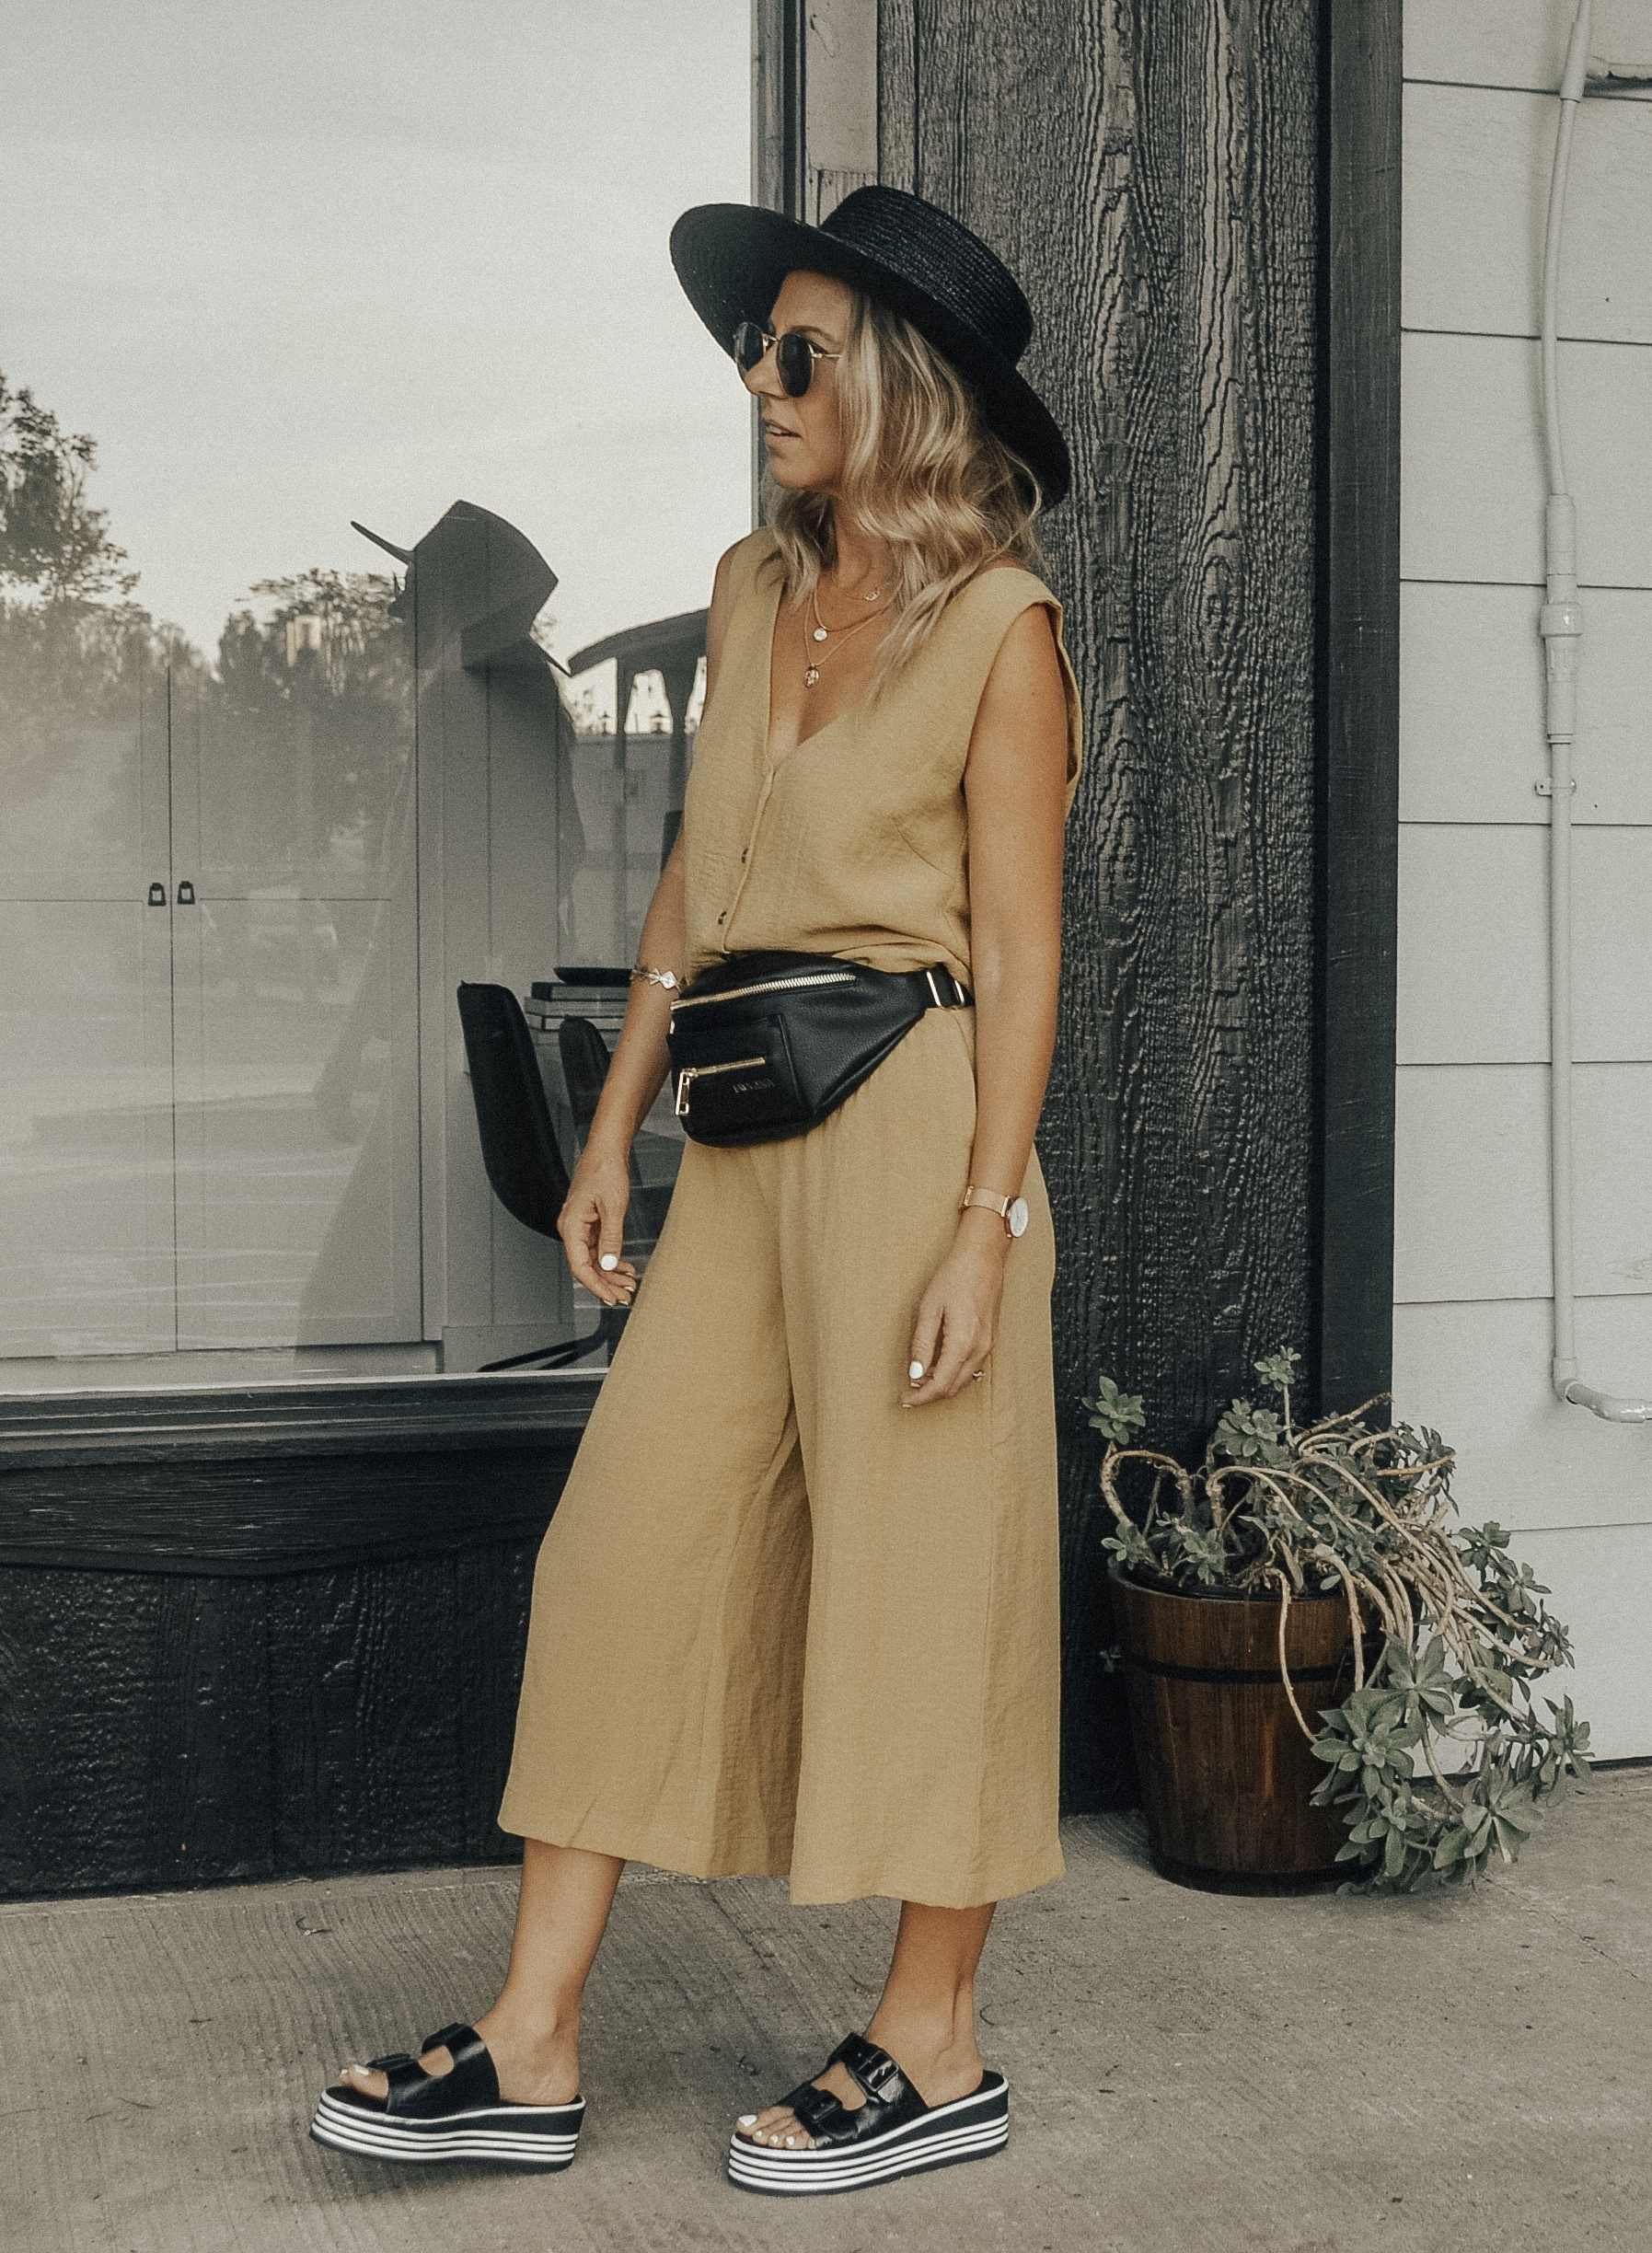 THE FANNY PACK IS BACK + 2 WAYS TO STYLE IT- Jaclyn De Leon Style + FAWN DESIGN FAWNY PACK + CASUAL STREET STYLE + MOM STYLE + BELT BAG + SUMMER OUTFIT + FALL STYLE + HOW TO STYLE A FANNY PACK + 90'S STYLE + RETRO LOOK + EDGY STREET STYLE LOOK +BLACK AND WHITE EMBROIDERED TOP + WHITE CULOTTES + YELLOW JUMPSUIT